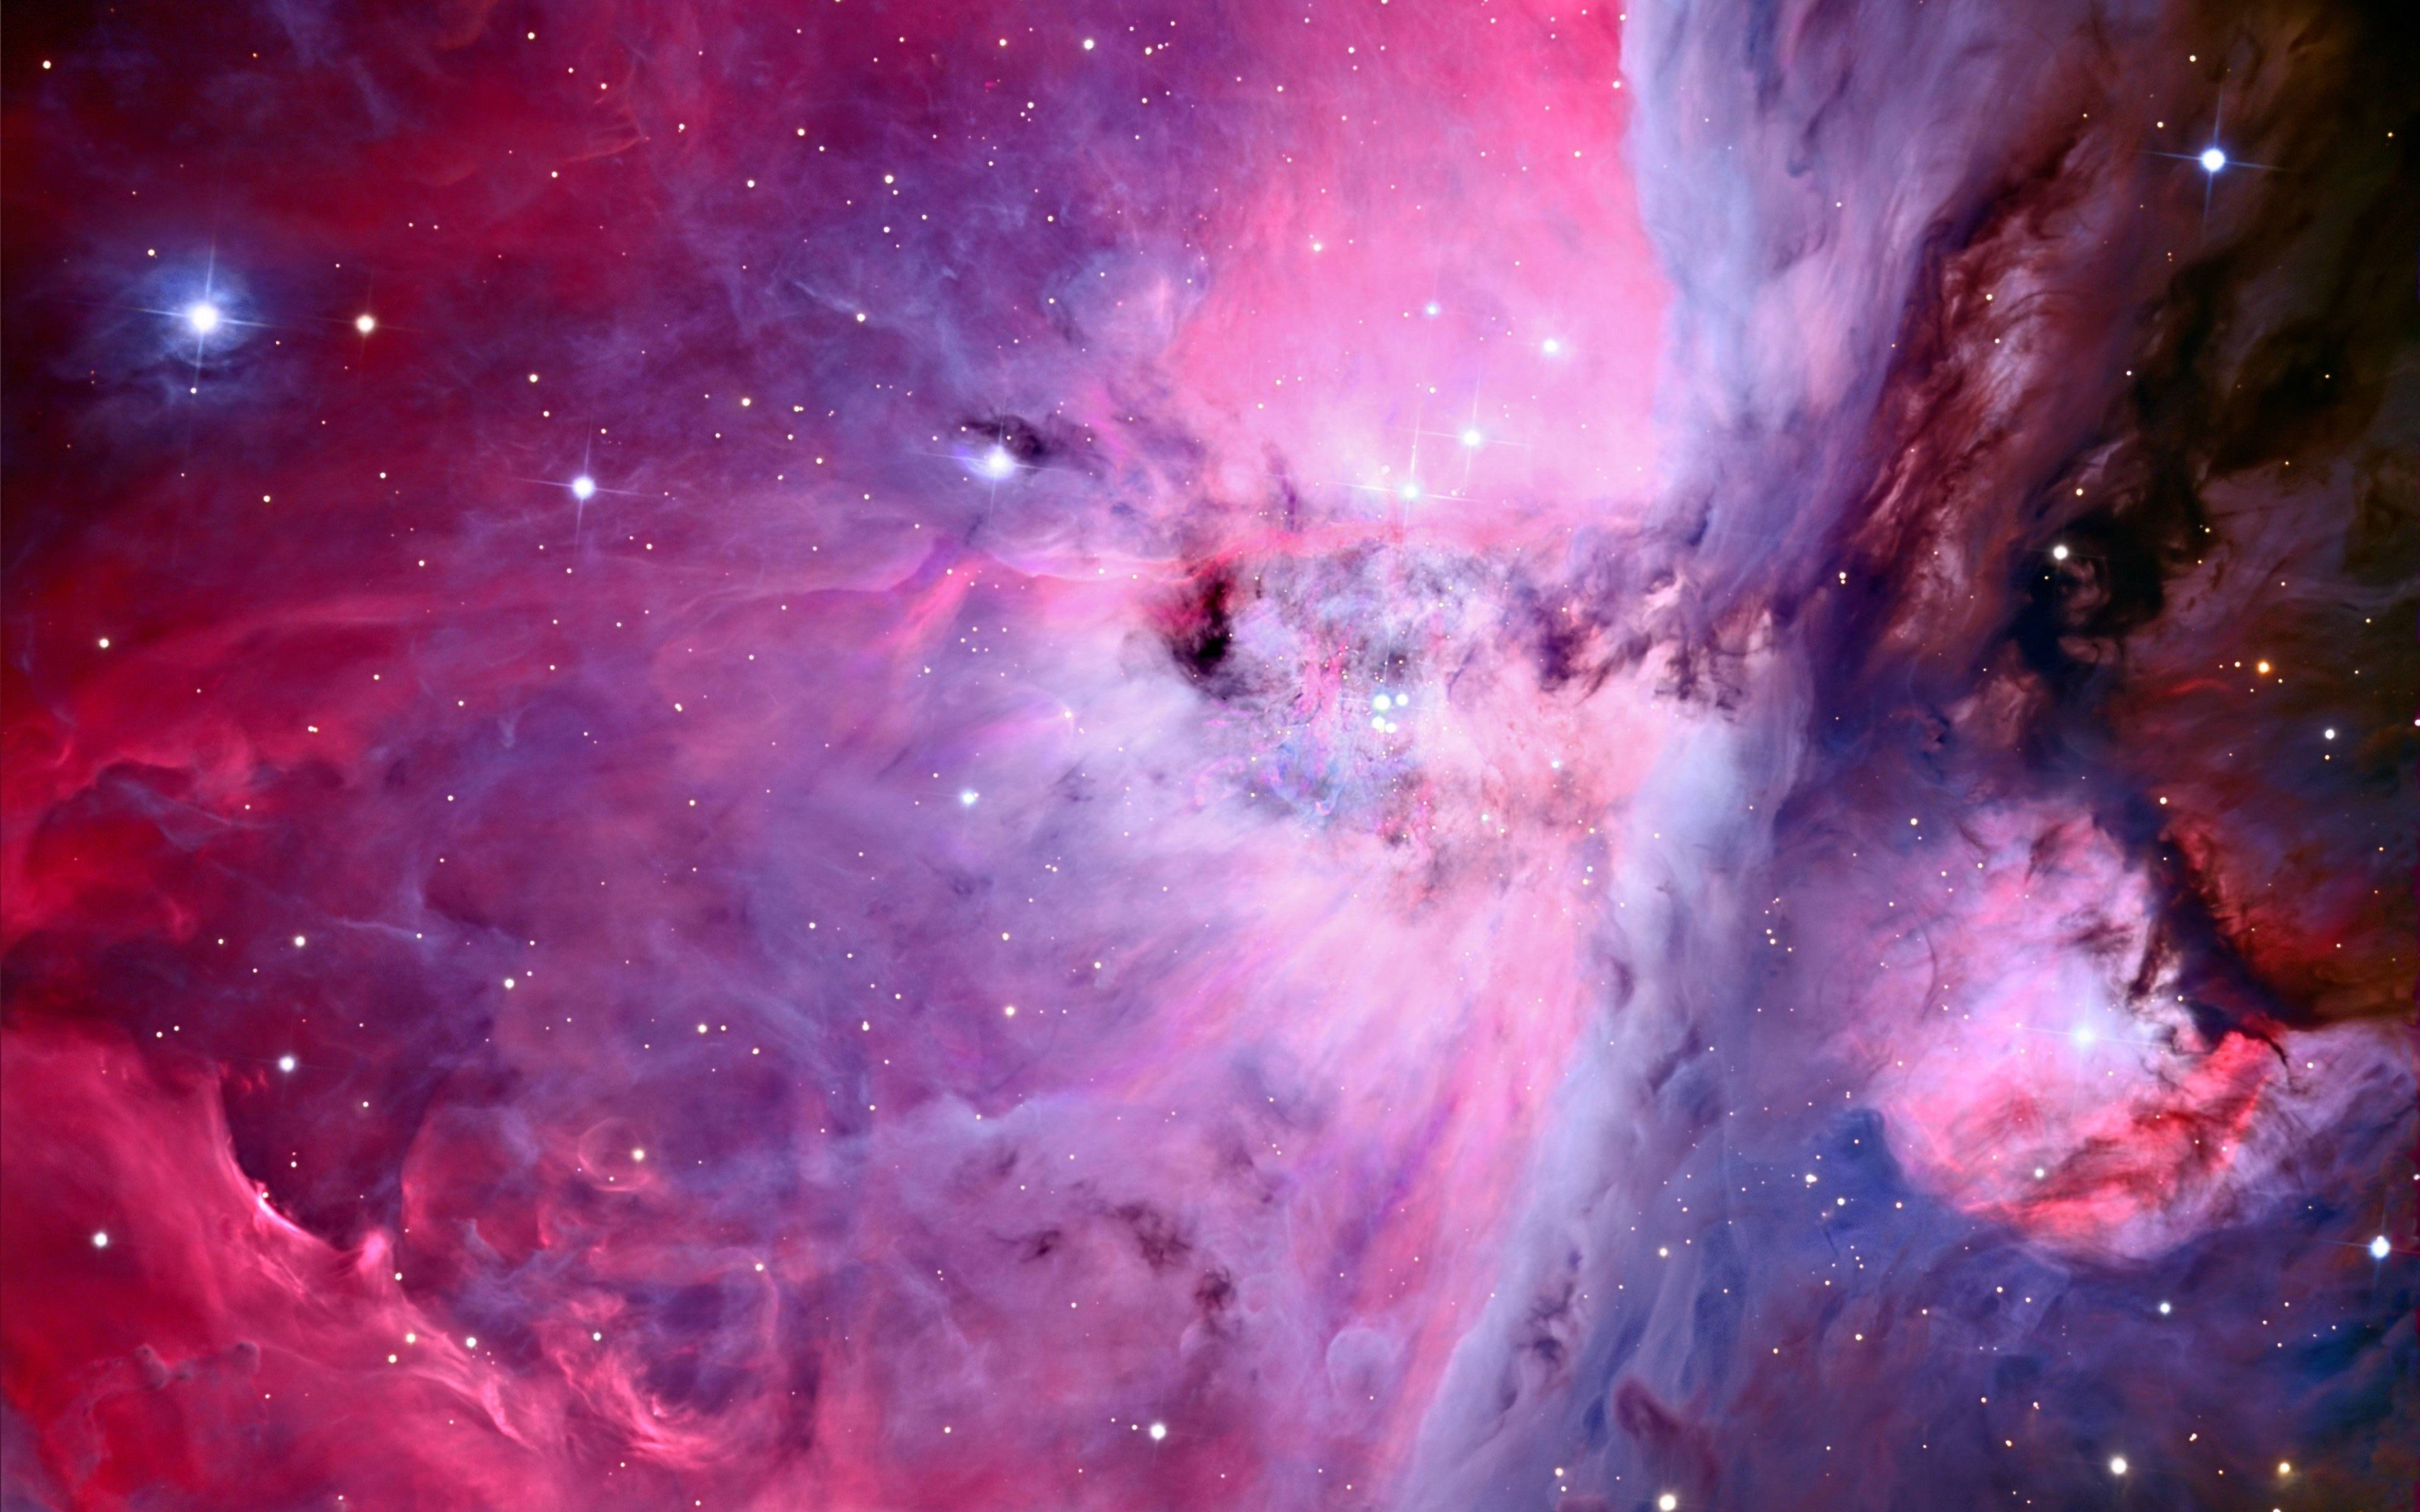 Outer Space Nebula Wallpaper - Pics about space